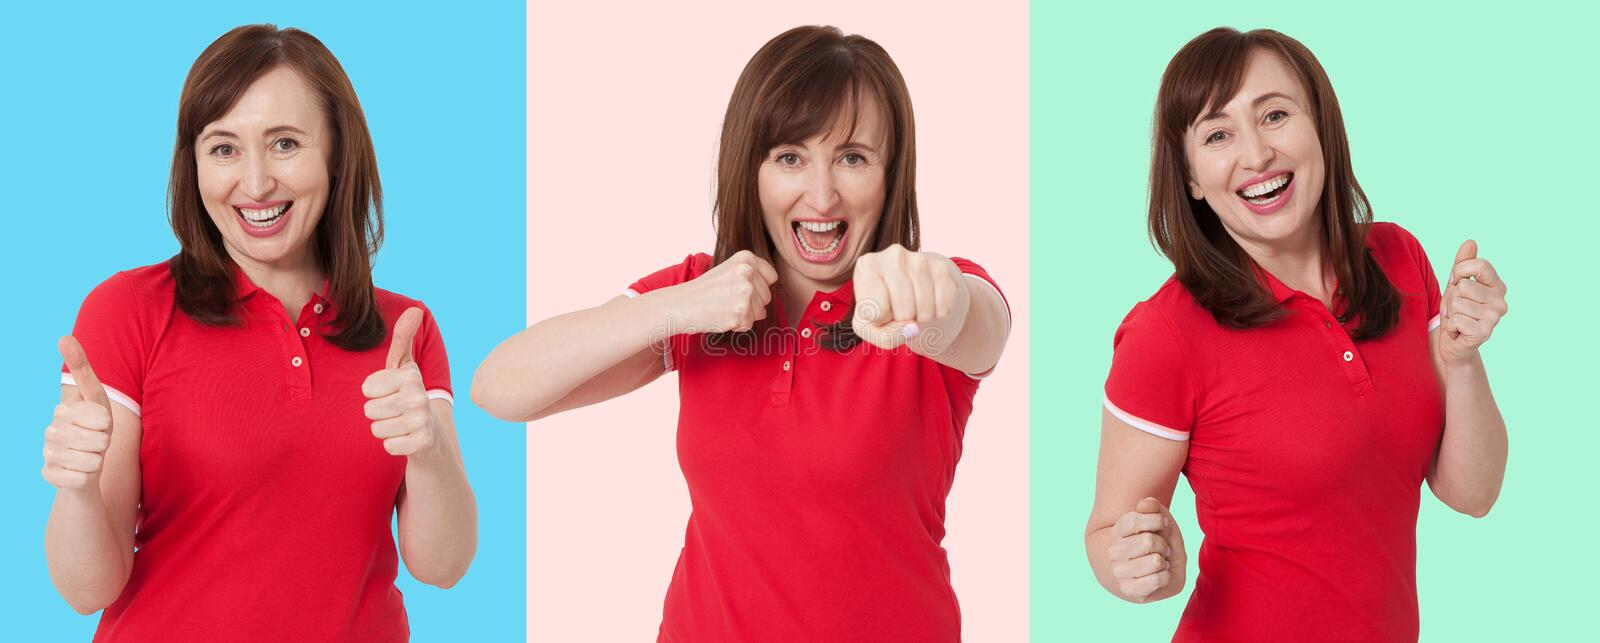 Set of surprised shocked excited woman face isolated on colorful background. Middle age female in summer t shirt. Copy space. stock images